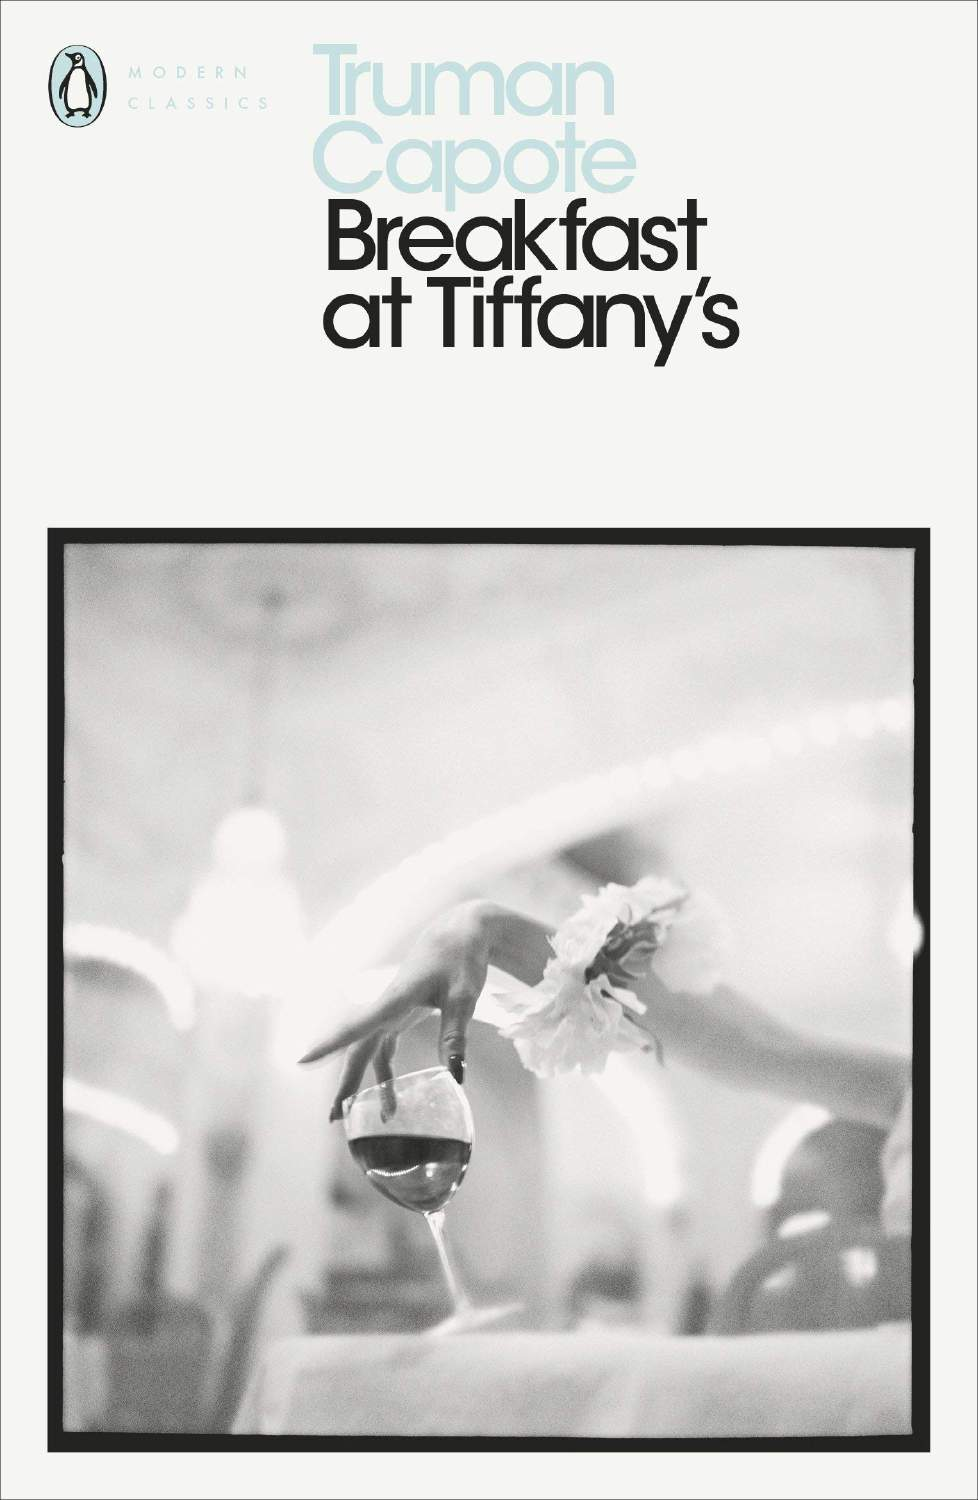 Old Favourites: Breakfast at Tiffany's